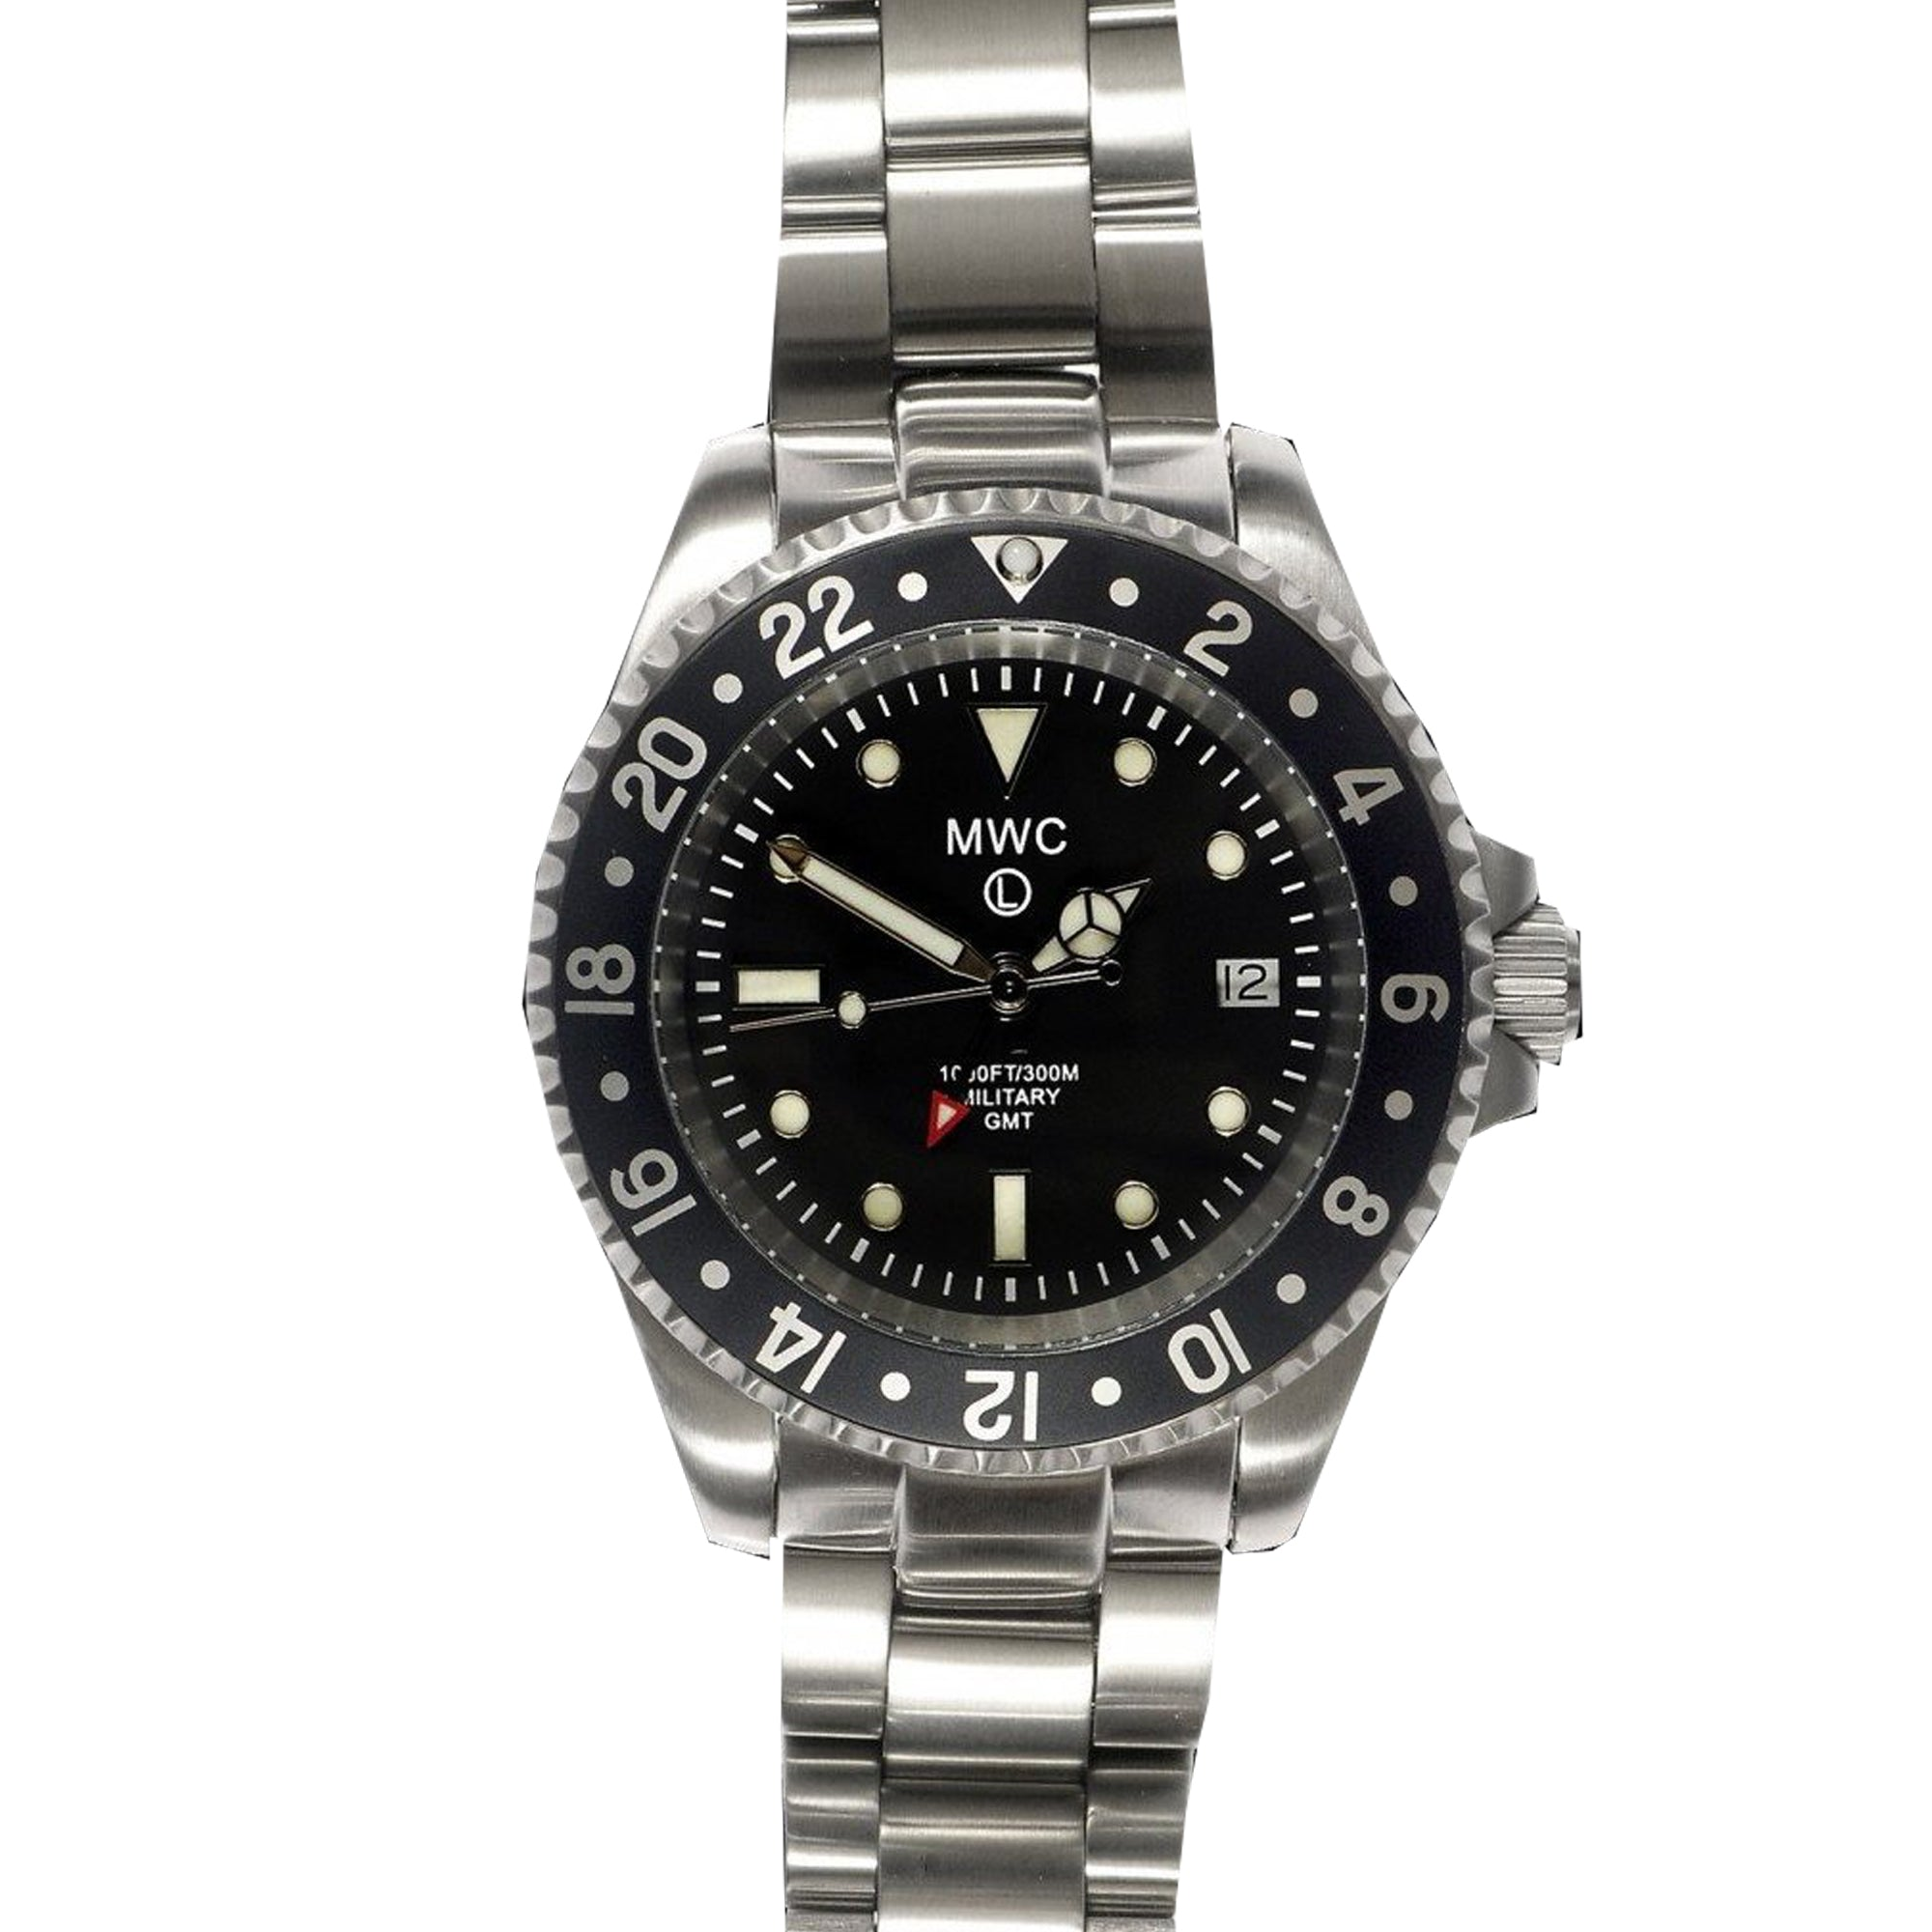 MWC GMT Dual Timezone Military Watch With SS Bracelet